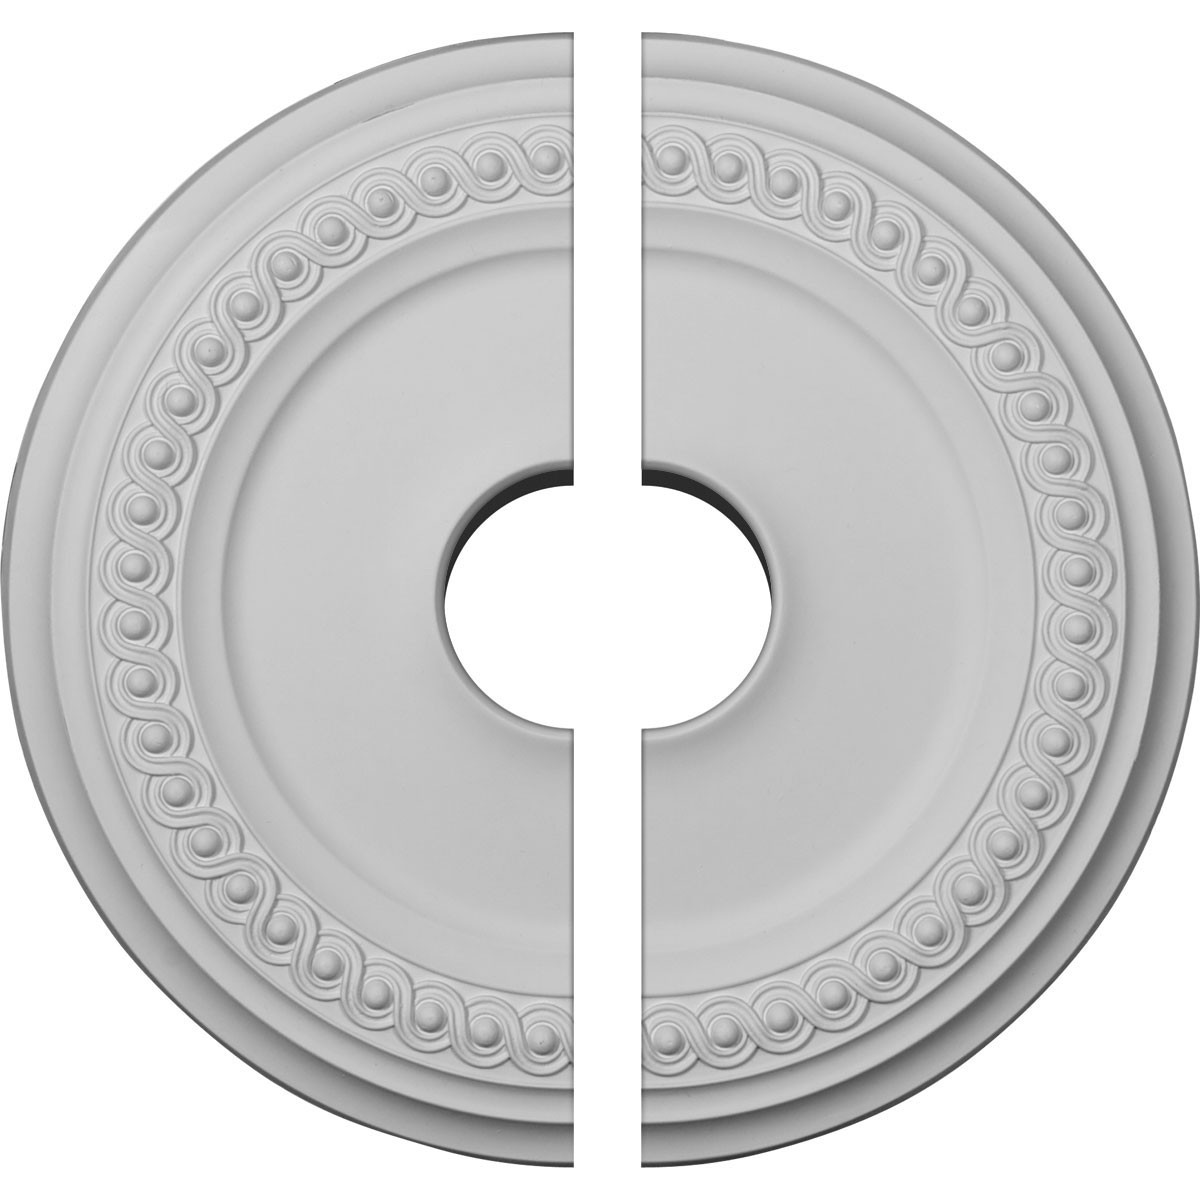 """EM-CM19CL2 - 18 5/8""""OD 4""""ID x 1 1/8""""P Classic Ceiling Medallion, Two Piece (Fits Canopies up to 12 3/4"""")"""